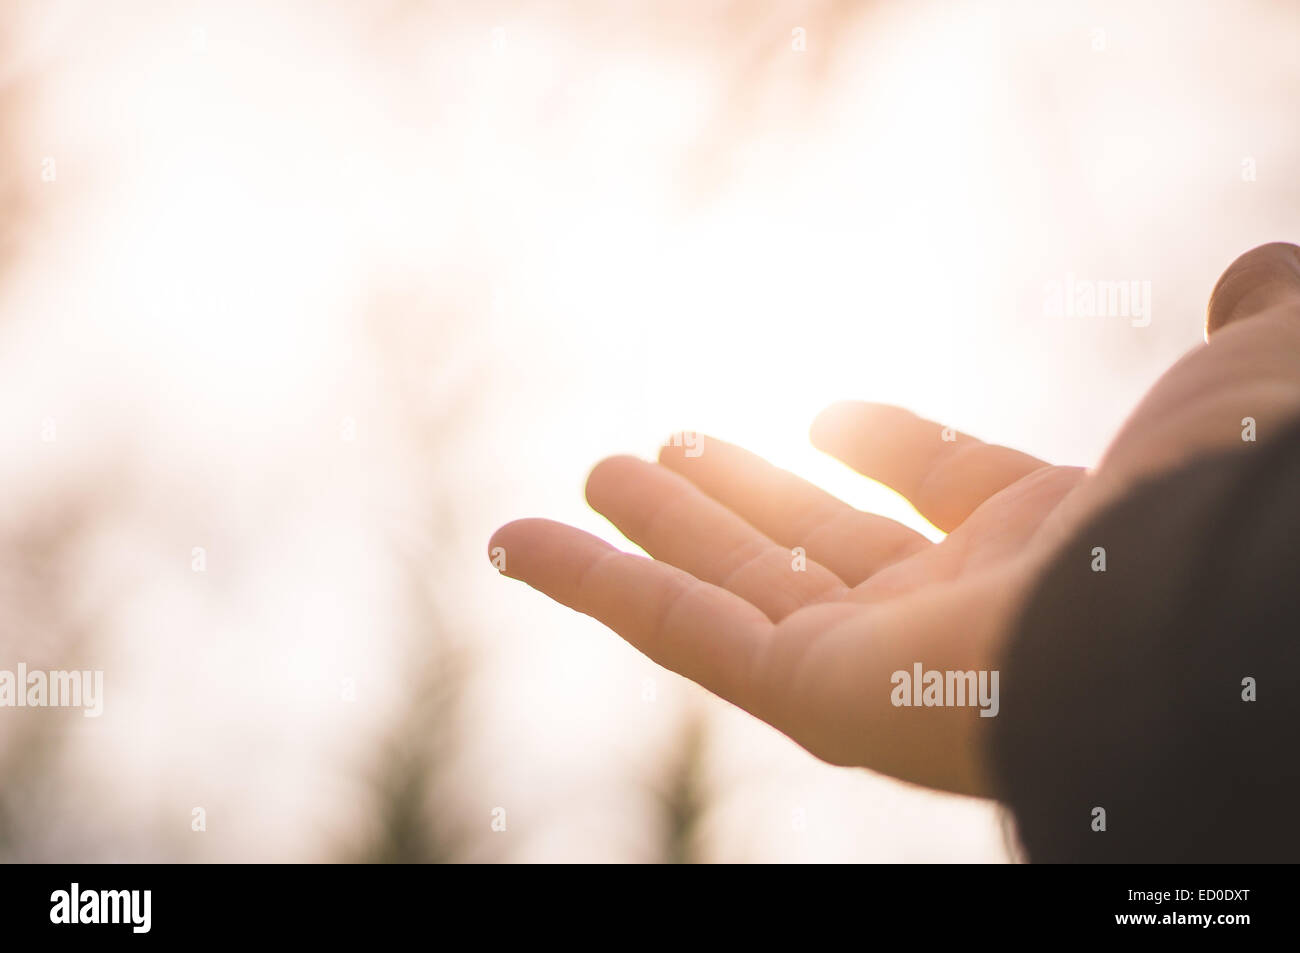 Person hand in front of sunlight Stock Photo